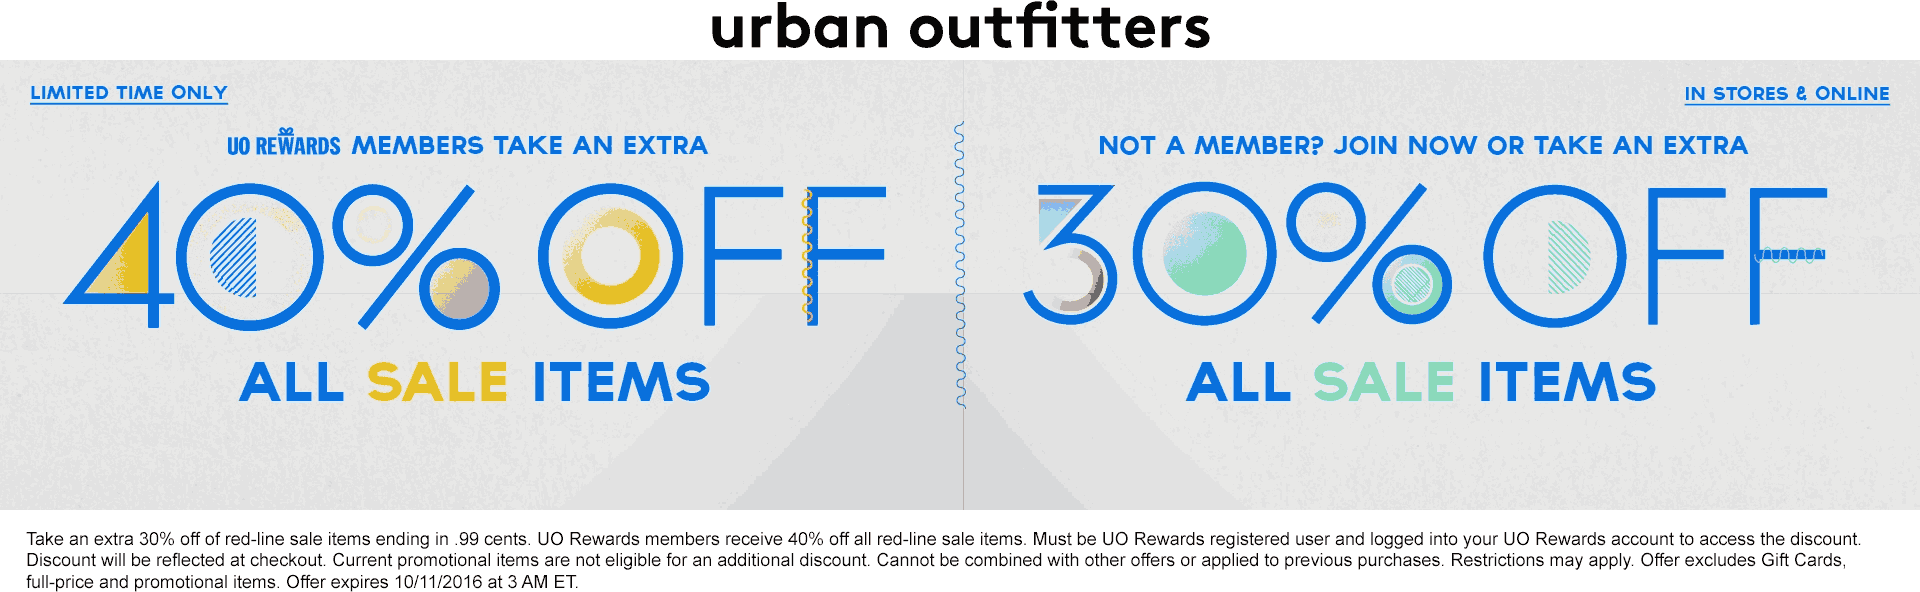 Urban Outfitters Coupon March 2017 Extra 30% off sale items at Urban Outfitters, ditto online